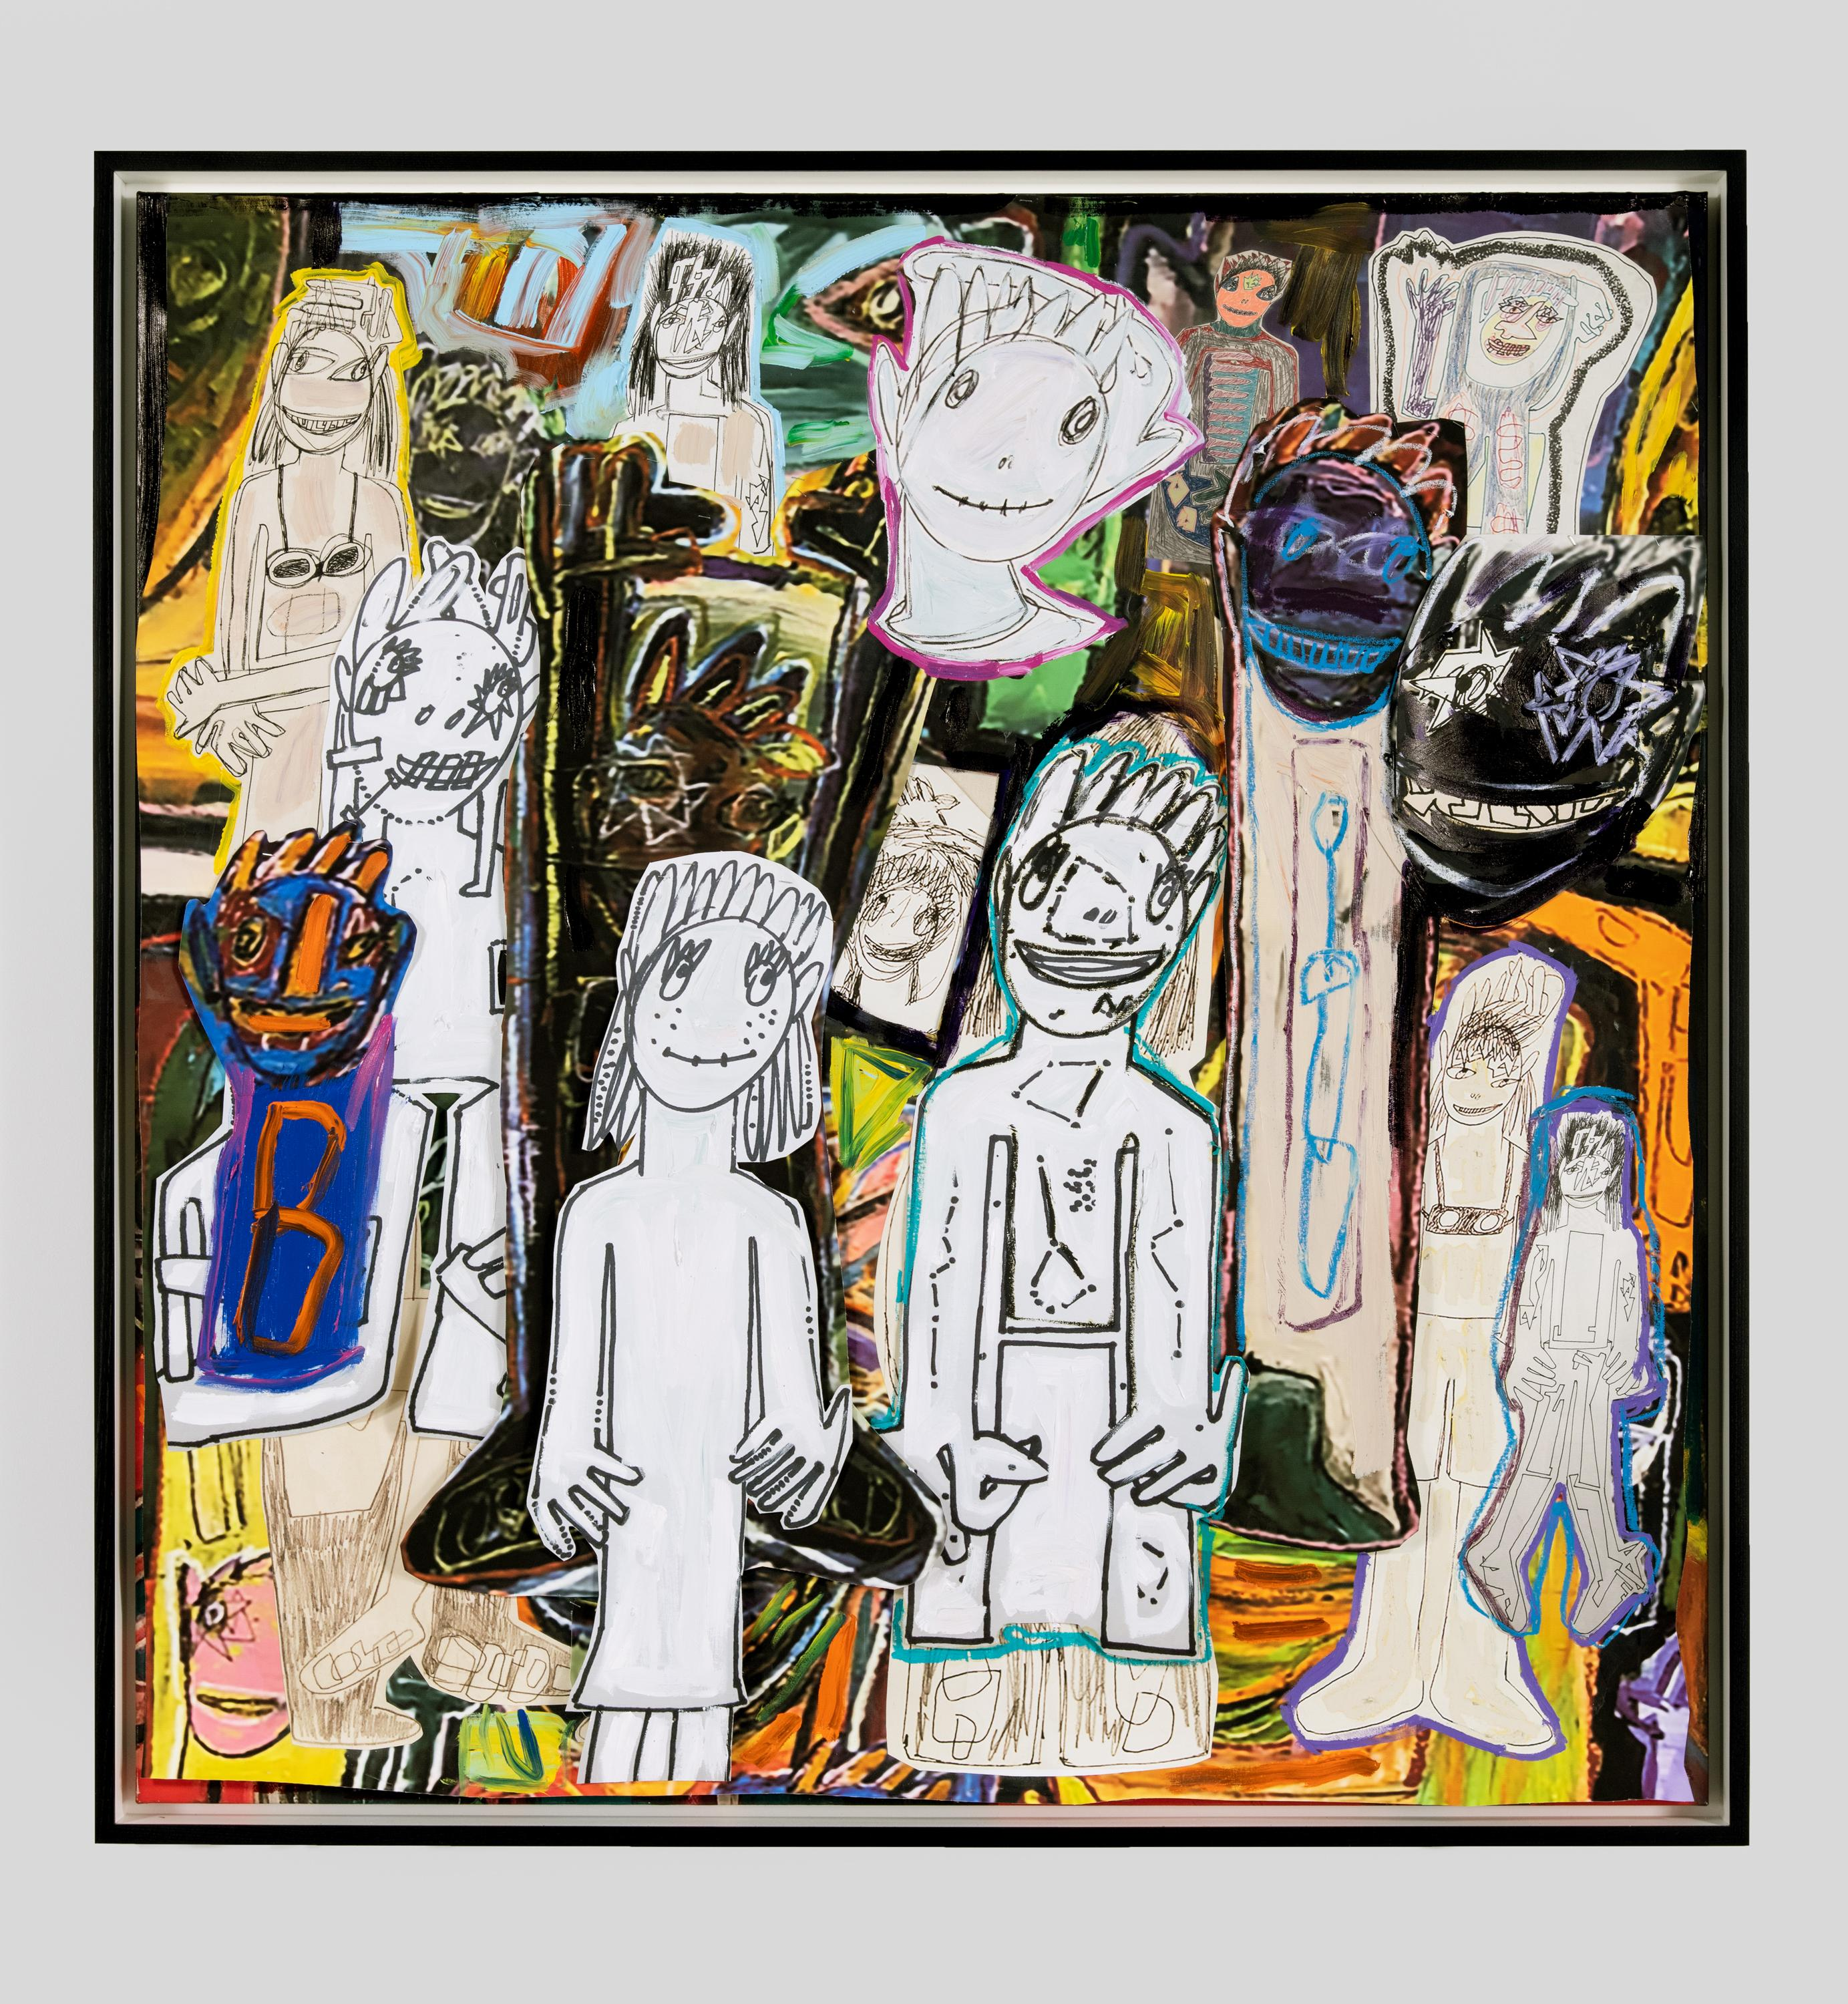 A collaged artwork consists of more than a dozen human figures and faces against a dark background. They are illustrated in a childish fashion.